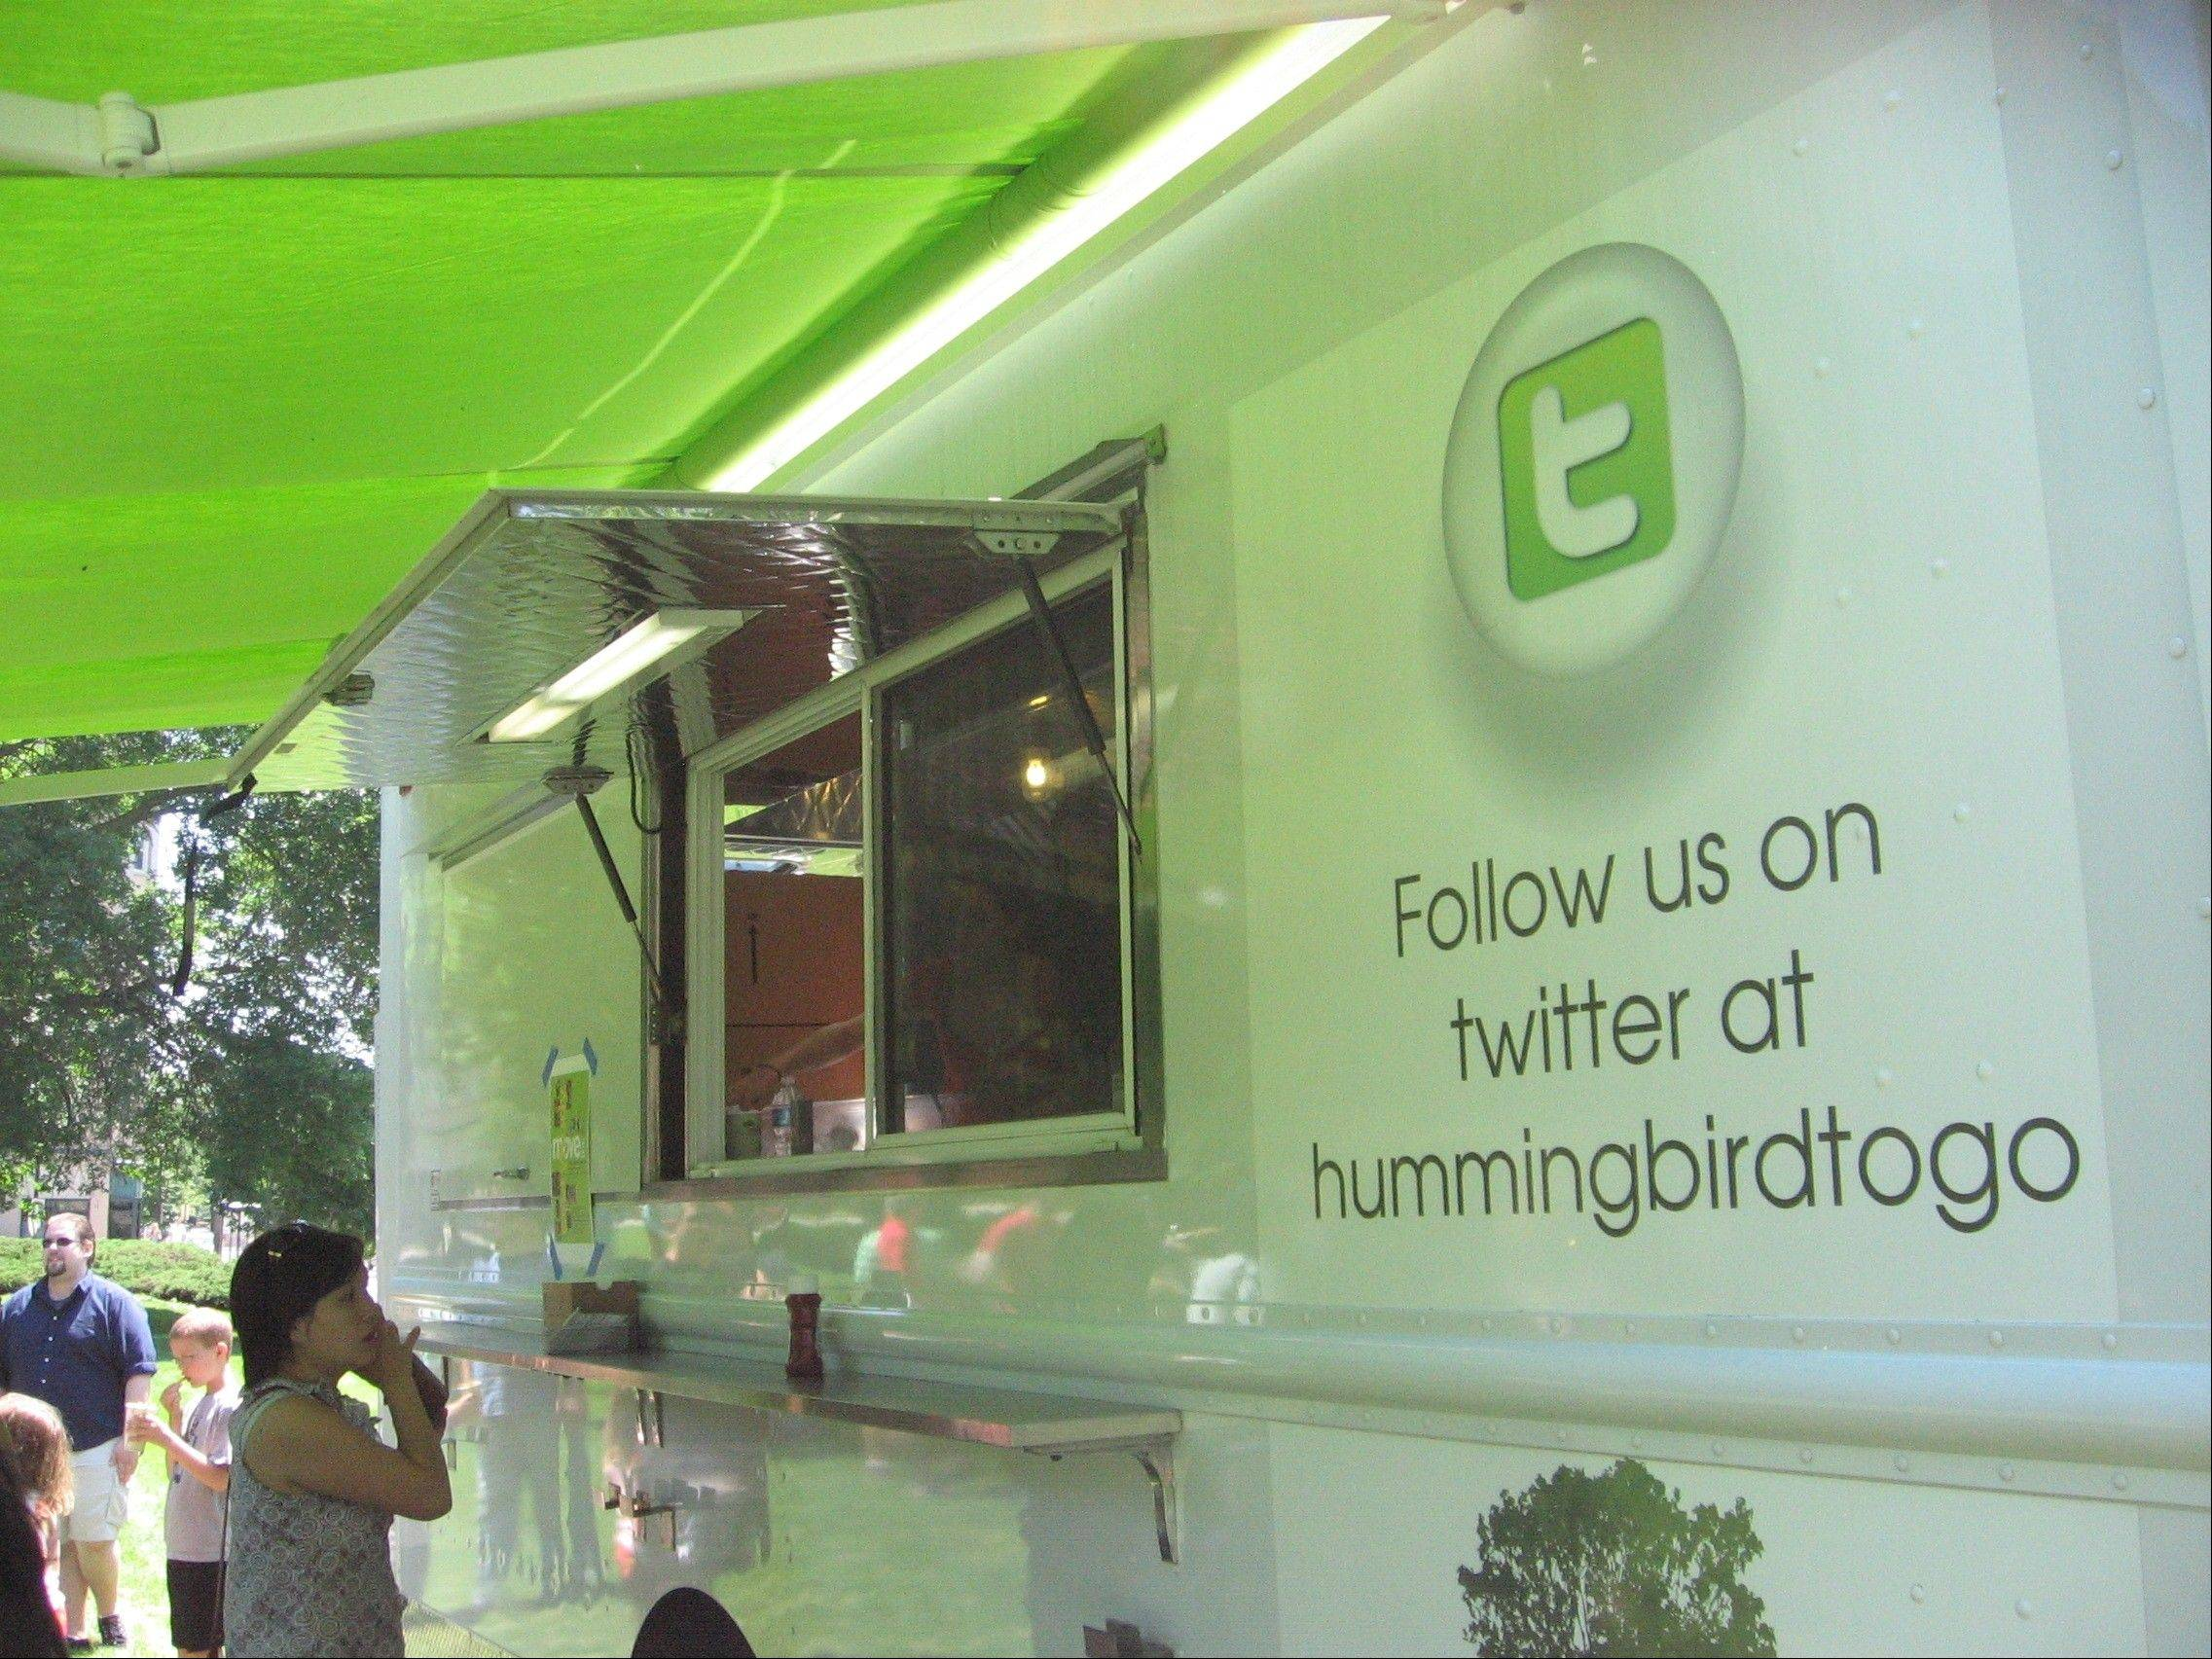 People line up for freshly made food from the Hummingbird Kitchen food truck during a June 26 festival in Evanston.